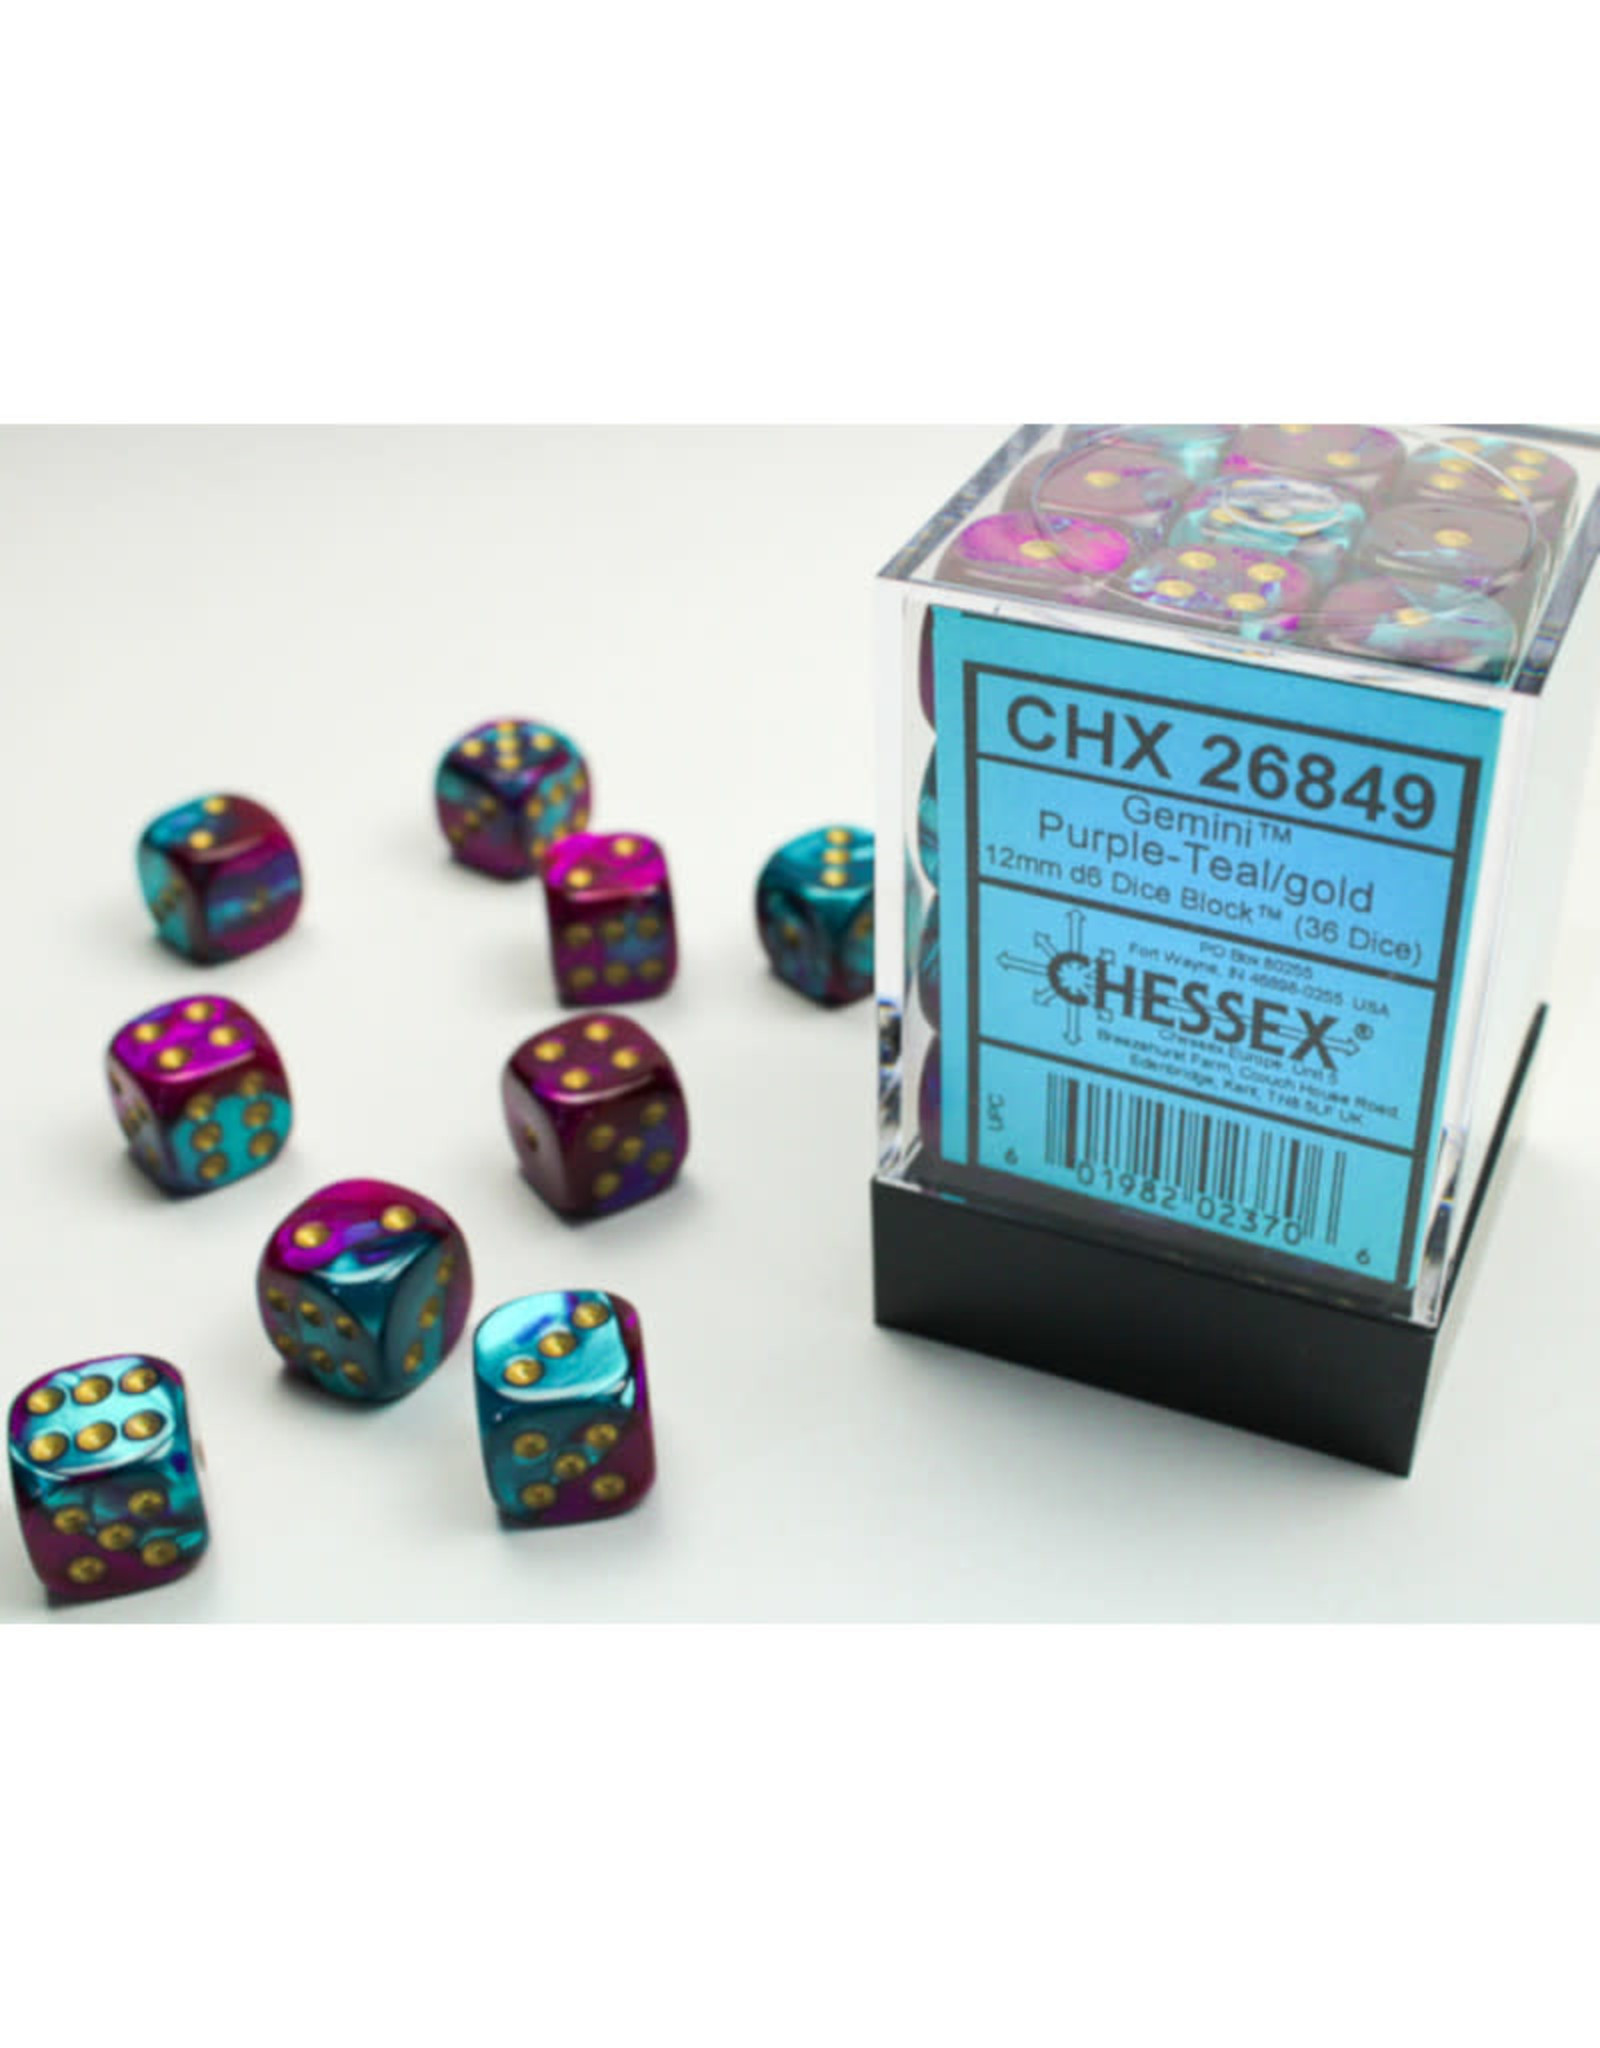 Chessex D6 Dice: 12mm Gemini Purple Teal/Gold (36)